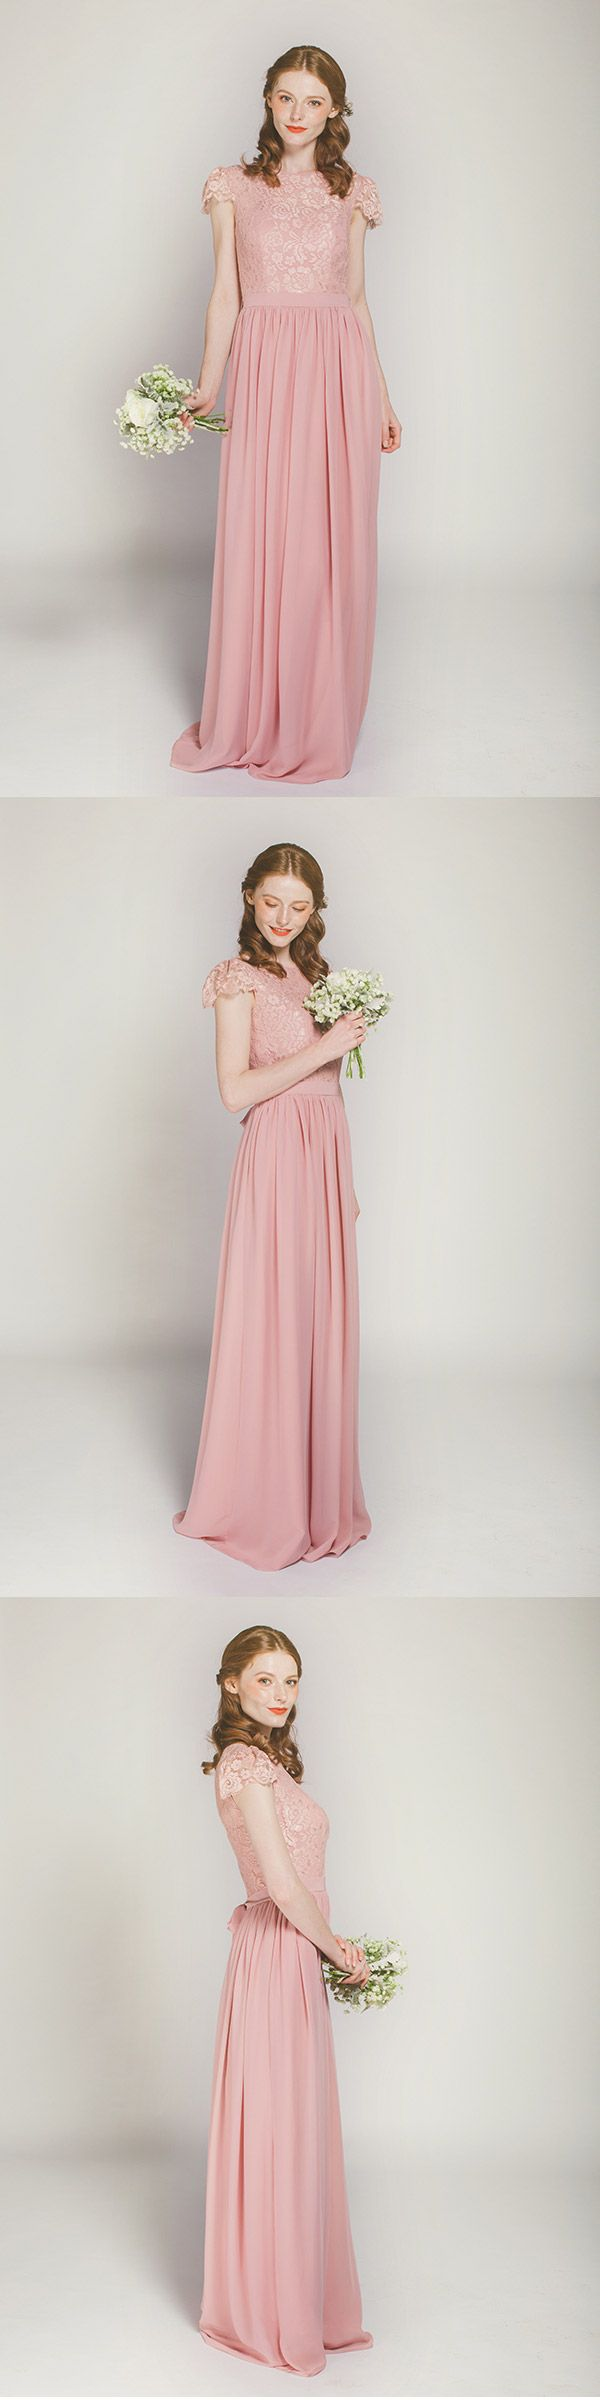 121 best bridesmaid dresses images on pinterest bridesmaids elegant dusty rose lace and chiffon bridesmaid dress with cap sleeves swbd009 ombrellifo Images